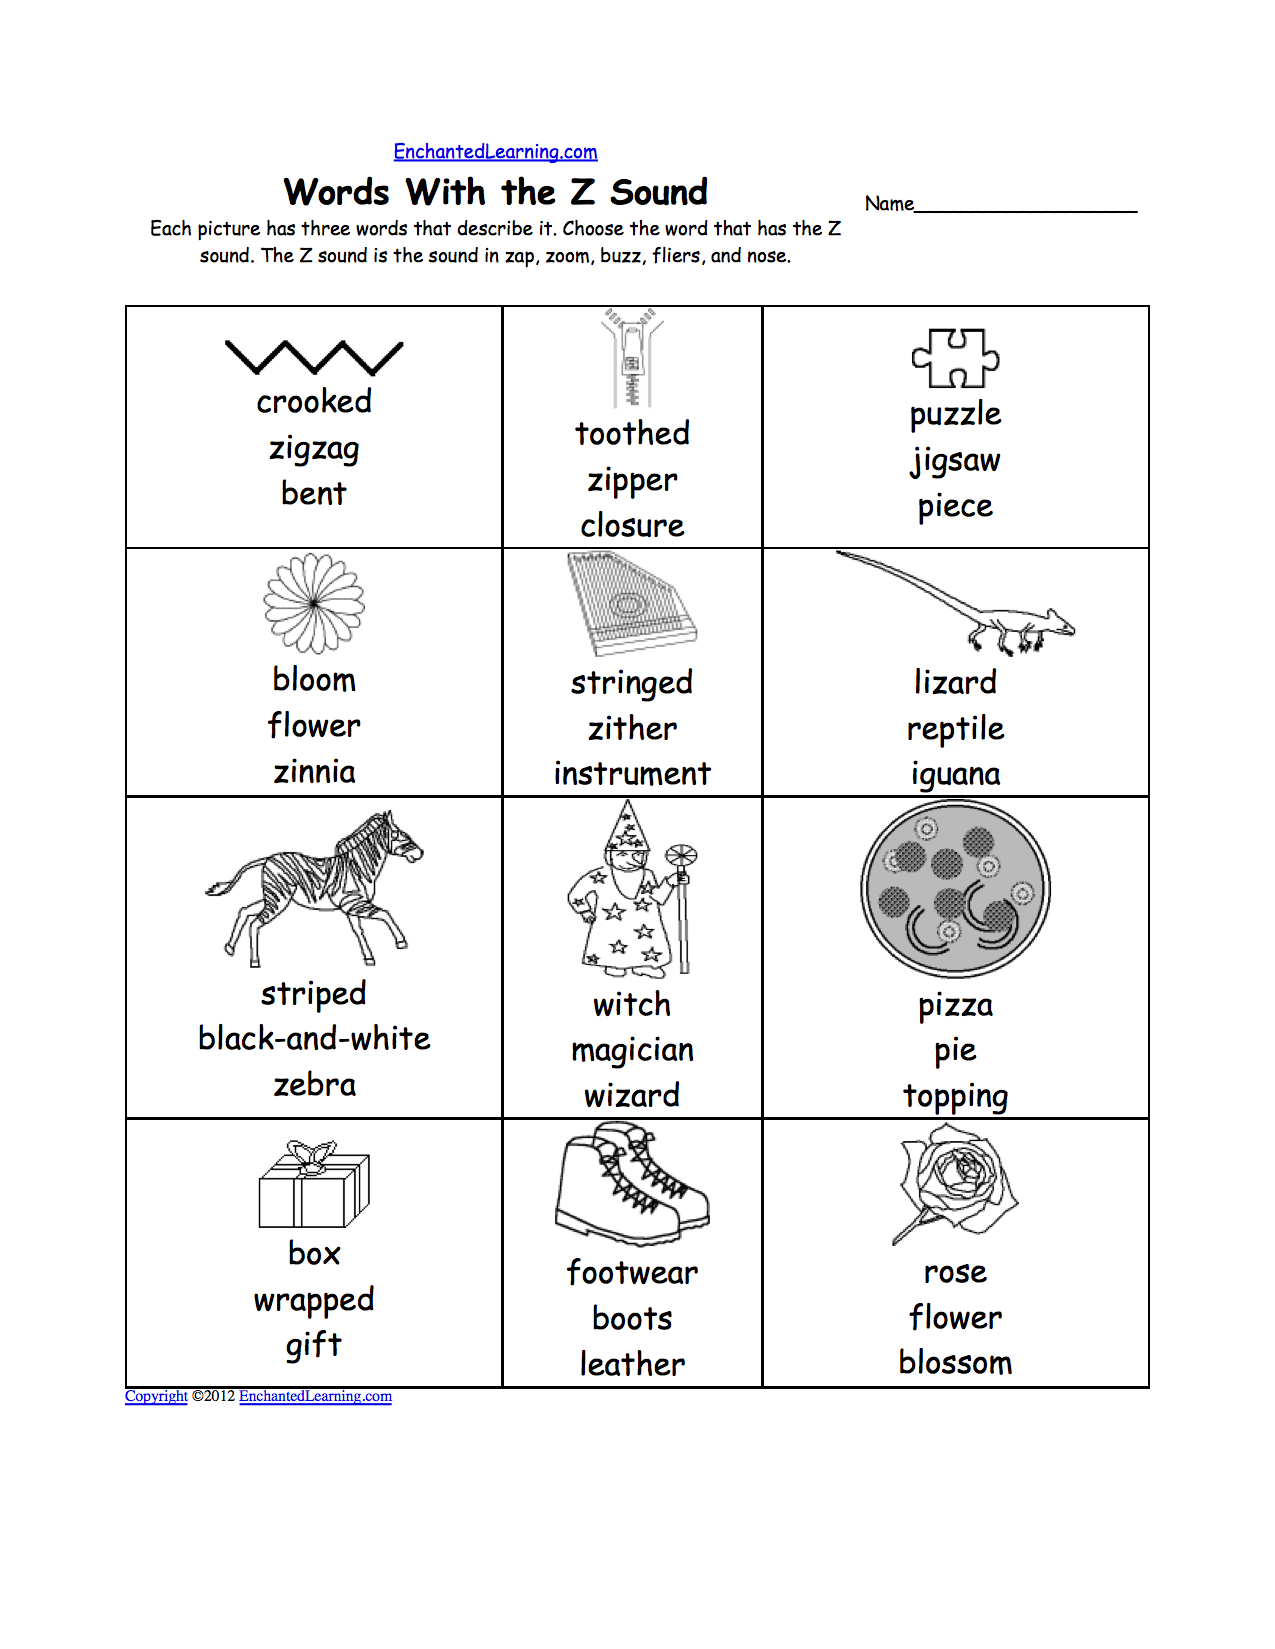 phonics worksheets multiple choice printable quizzes each printable